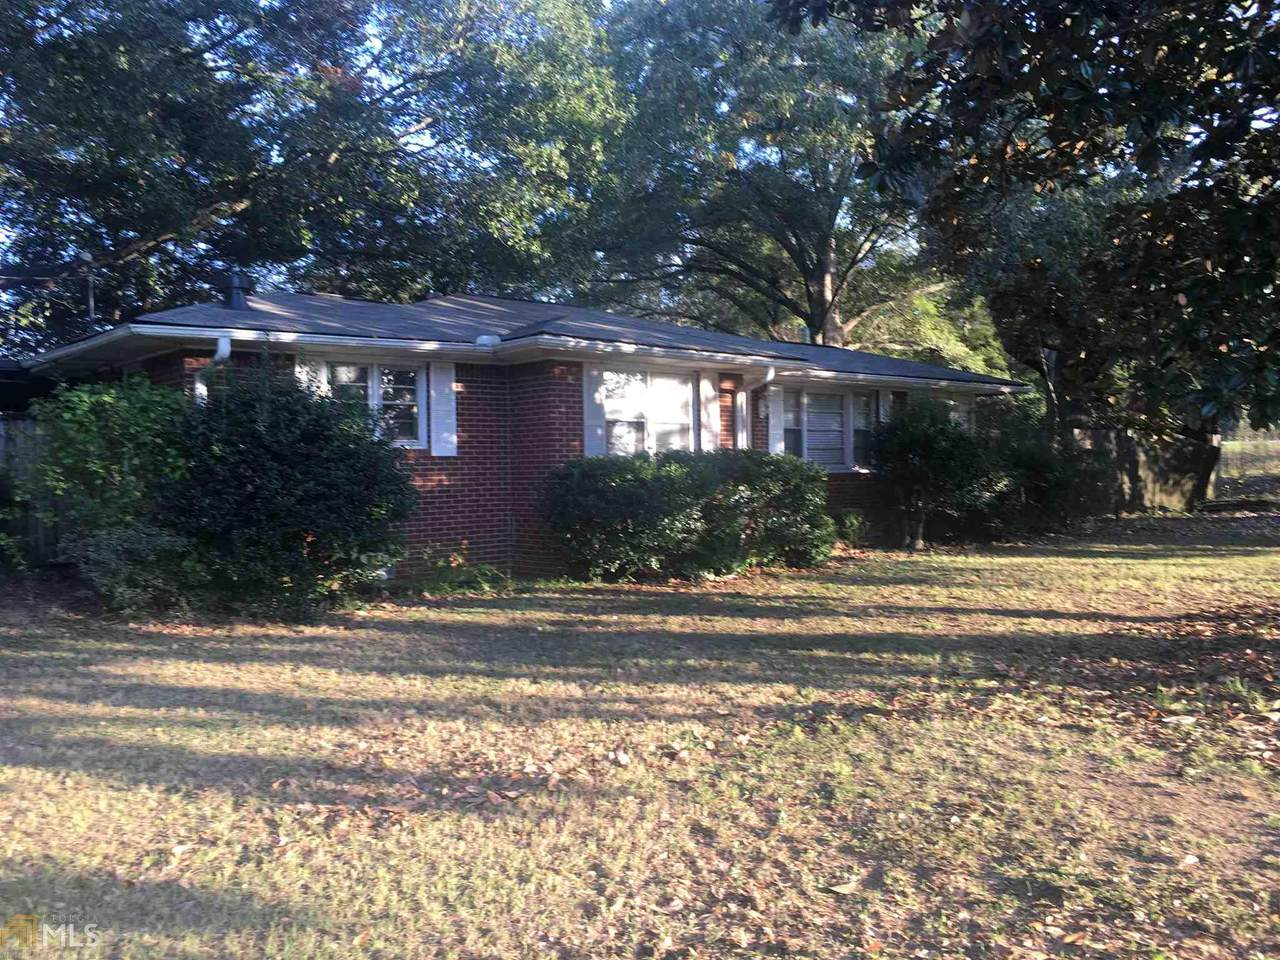 1810 Highway 138 E - Photo 1